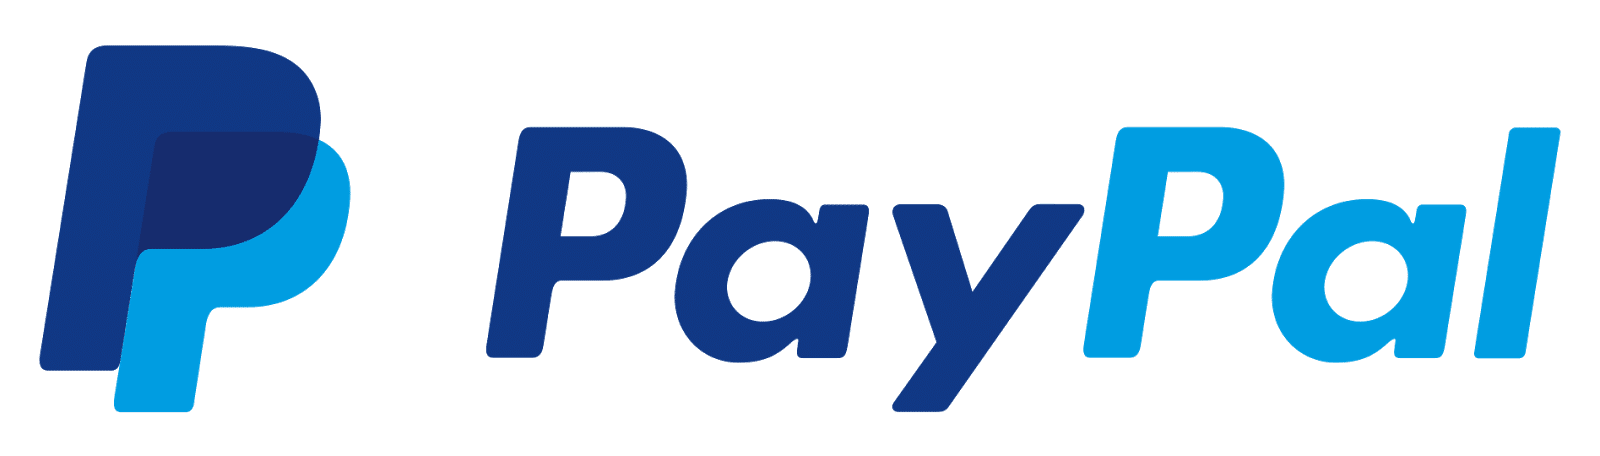 paypal-1600px